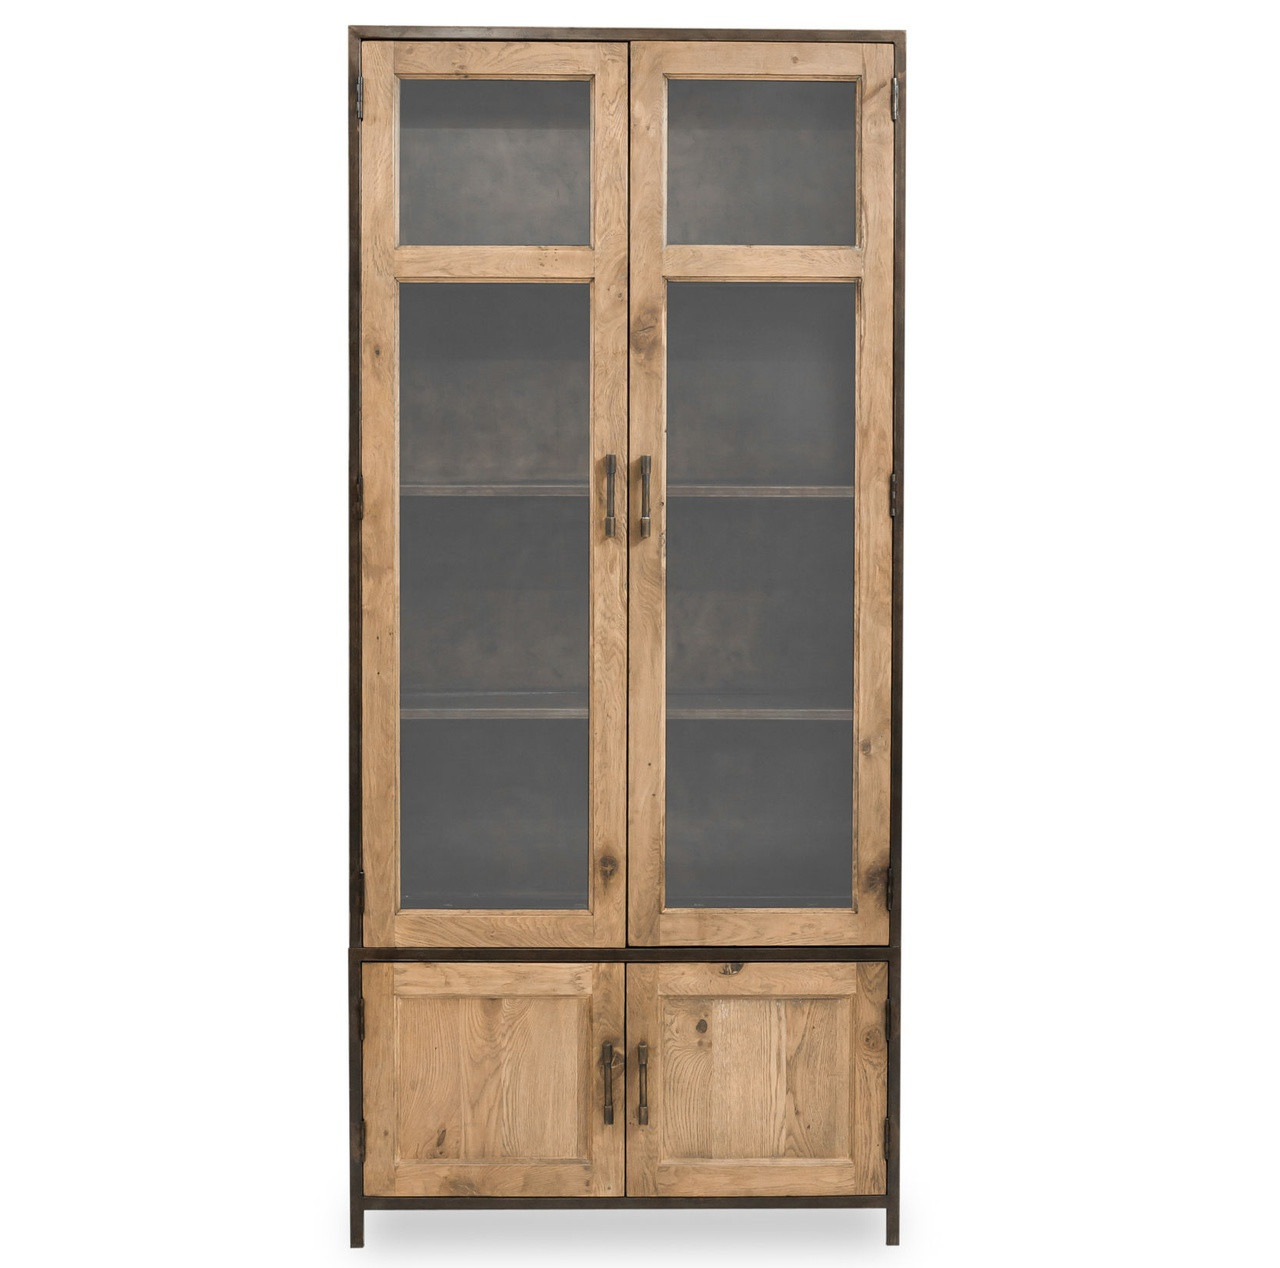 Excellent Dominic Industrial Metal + Oak Tall Cabinet with Glass Doors | Zin  GH05